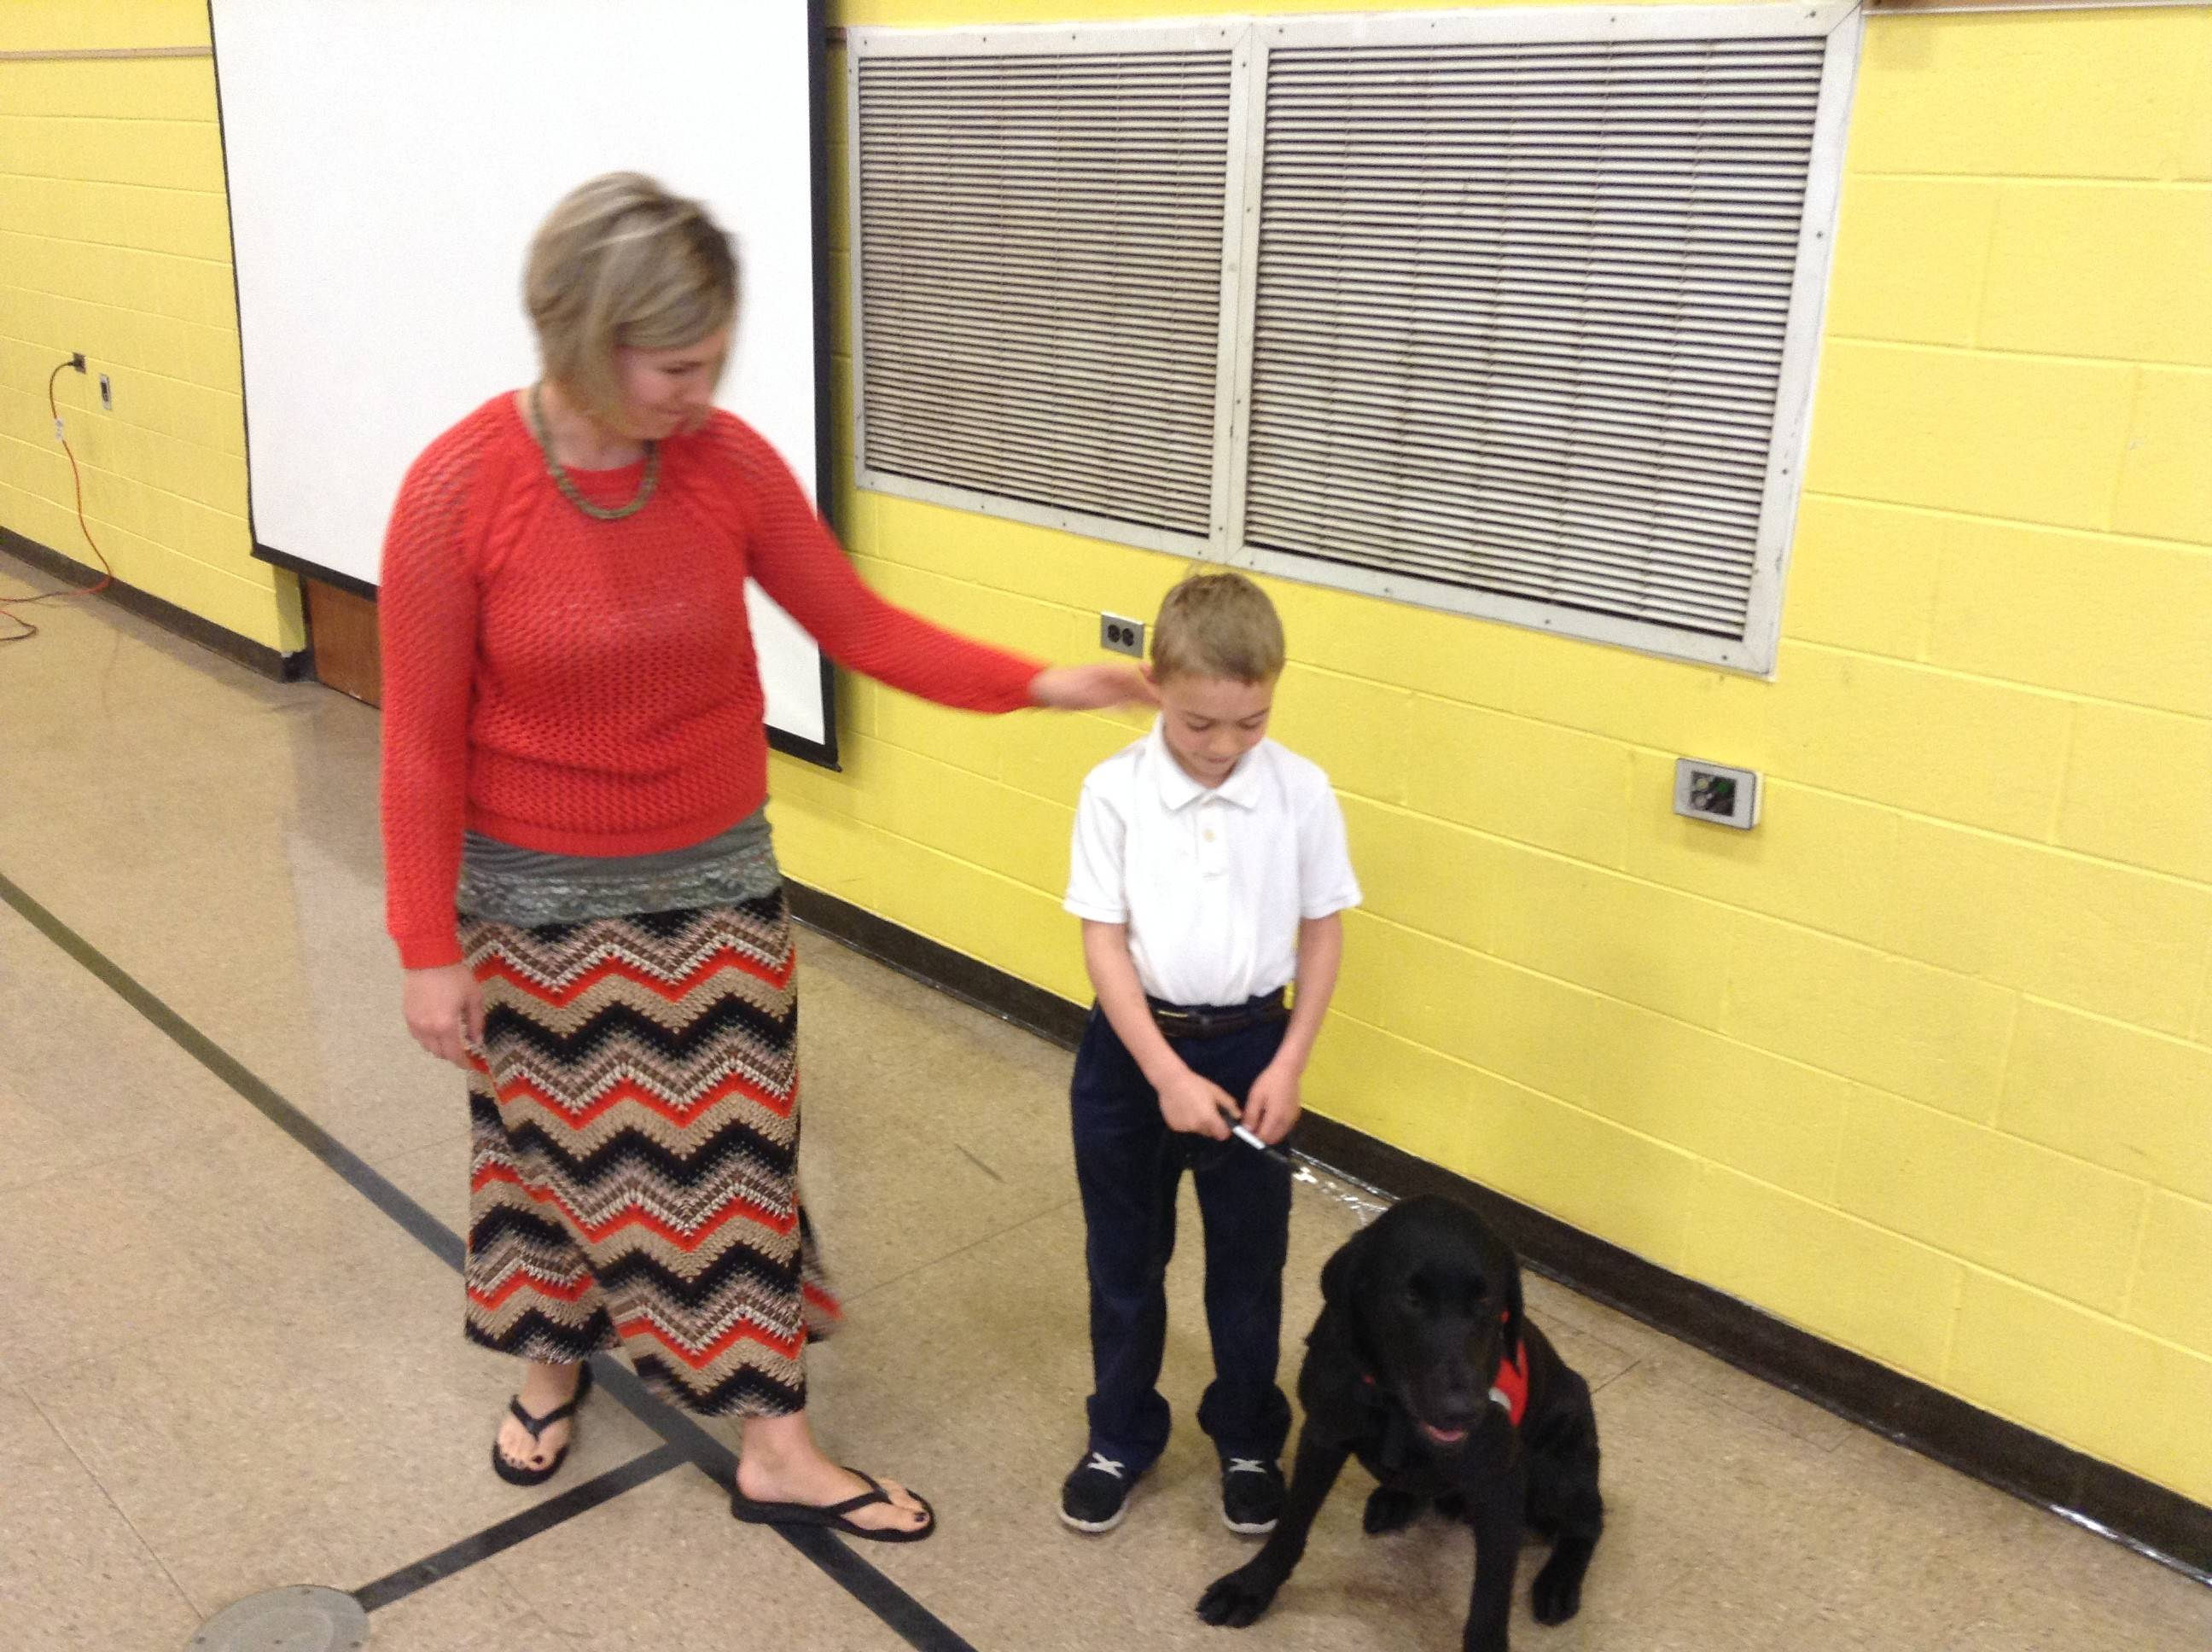 Rachel Gorman, her son, Aidan, and the boy's diabetes-alert dog, Chevy, participate in Friday's assembly at St. Mary of the Annunciation Catholic School in Fremont Township.